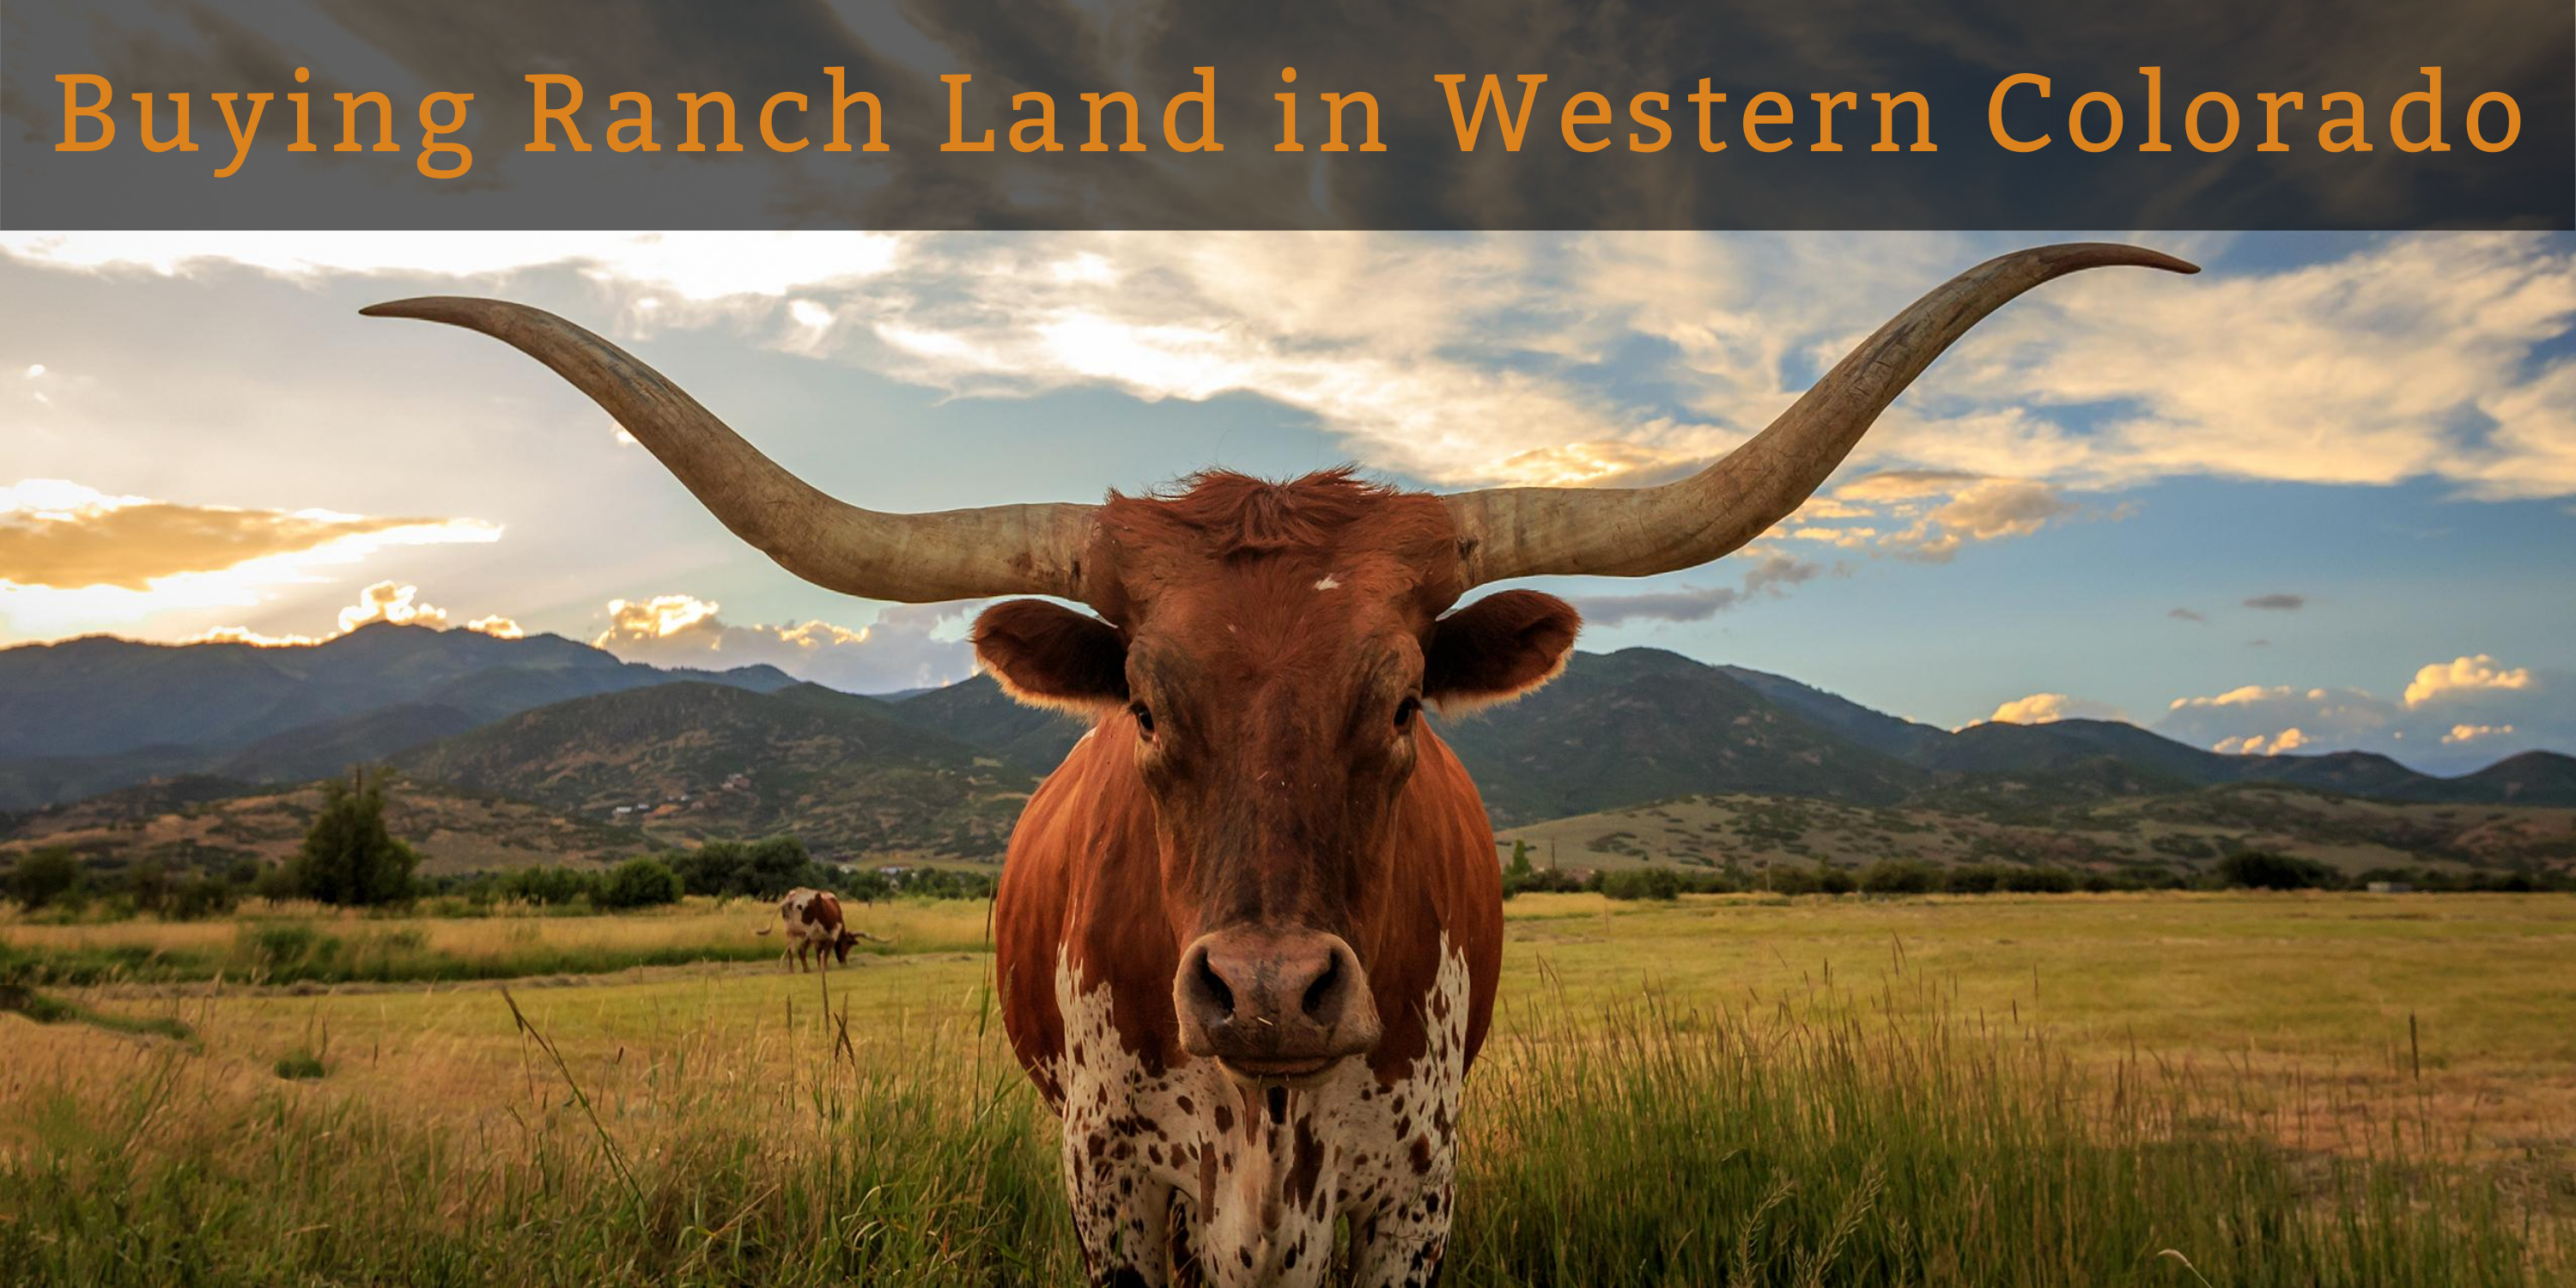 Longhorn facing the camera with mountains in the background show what to expect when buying ranch land in Western Colorado